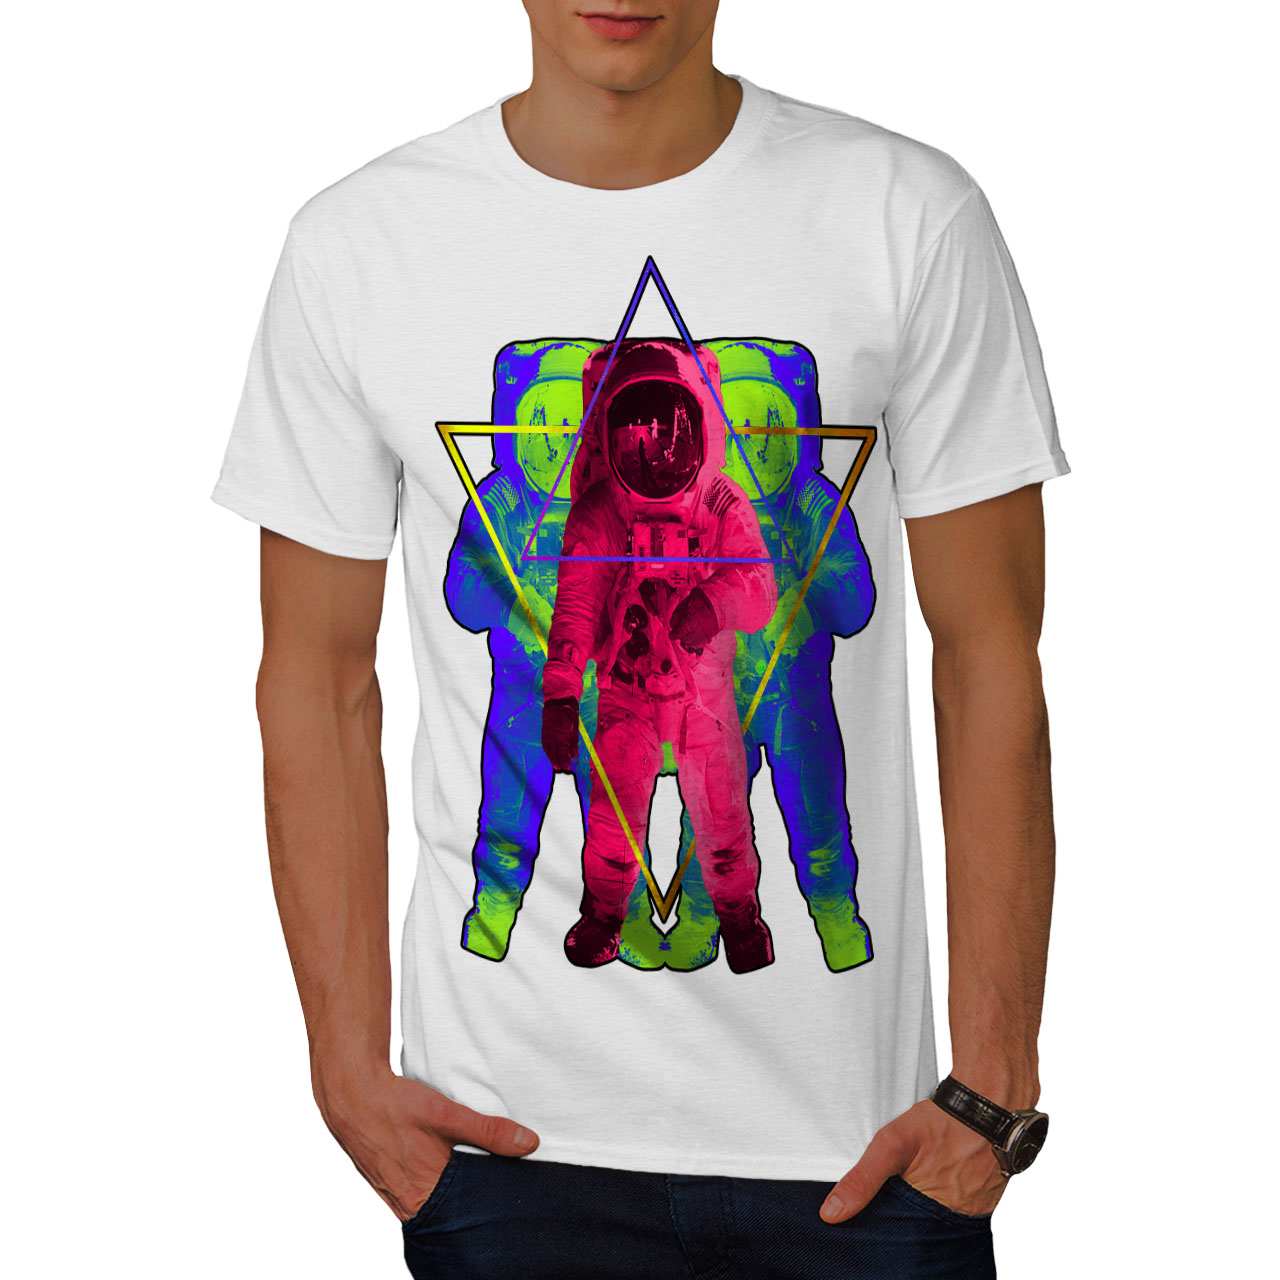 Wellcoda-Psychedelic-Astronaut-Mens-T-shirt-Star-Graphic-Design-Printed-Tee thumbnail 9